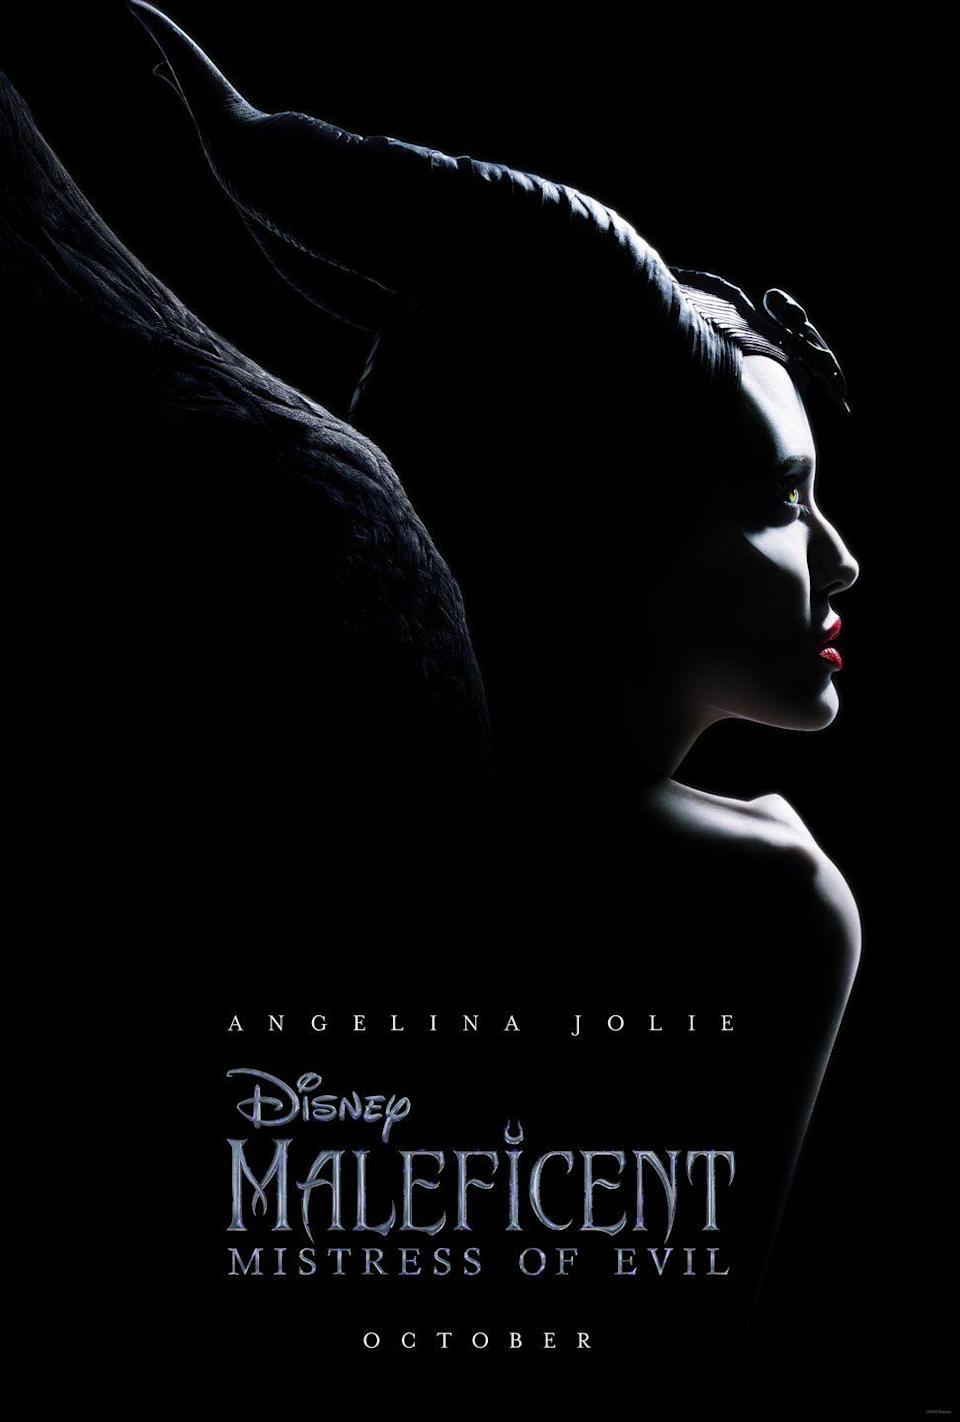 <p>Maleficent is back and she's ready for some revenge. Kicking off a couple of years after the first movie ended, Maleficent still isn't happy with how things have worked out for her and she goes head-to-head with Aurora. However, something is affecting the entire kingdom and Maleficent and Aurora must work together in order to protect everything within it. </p>